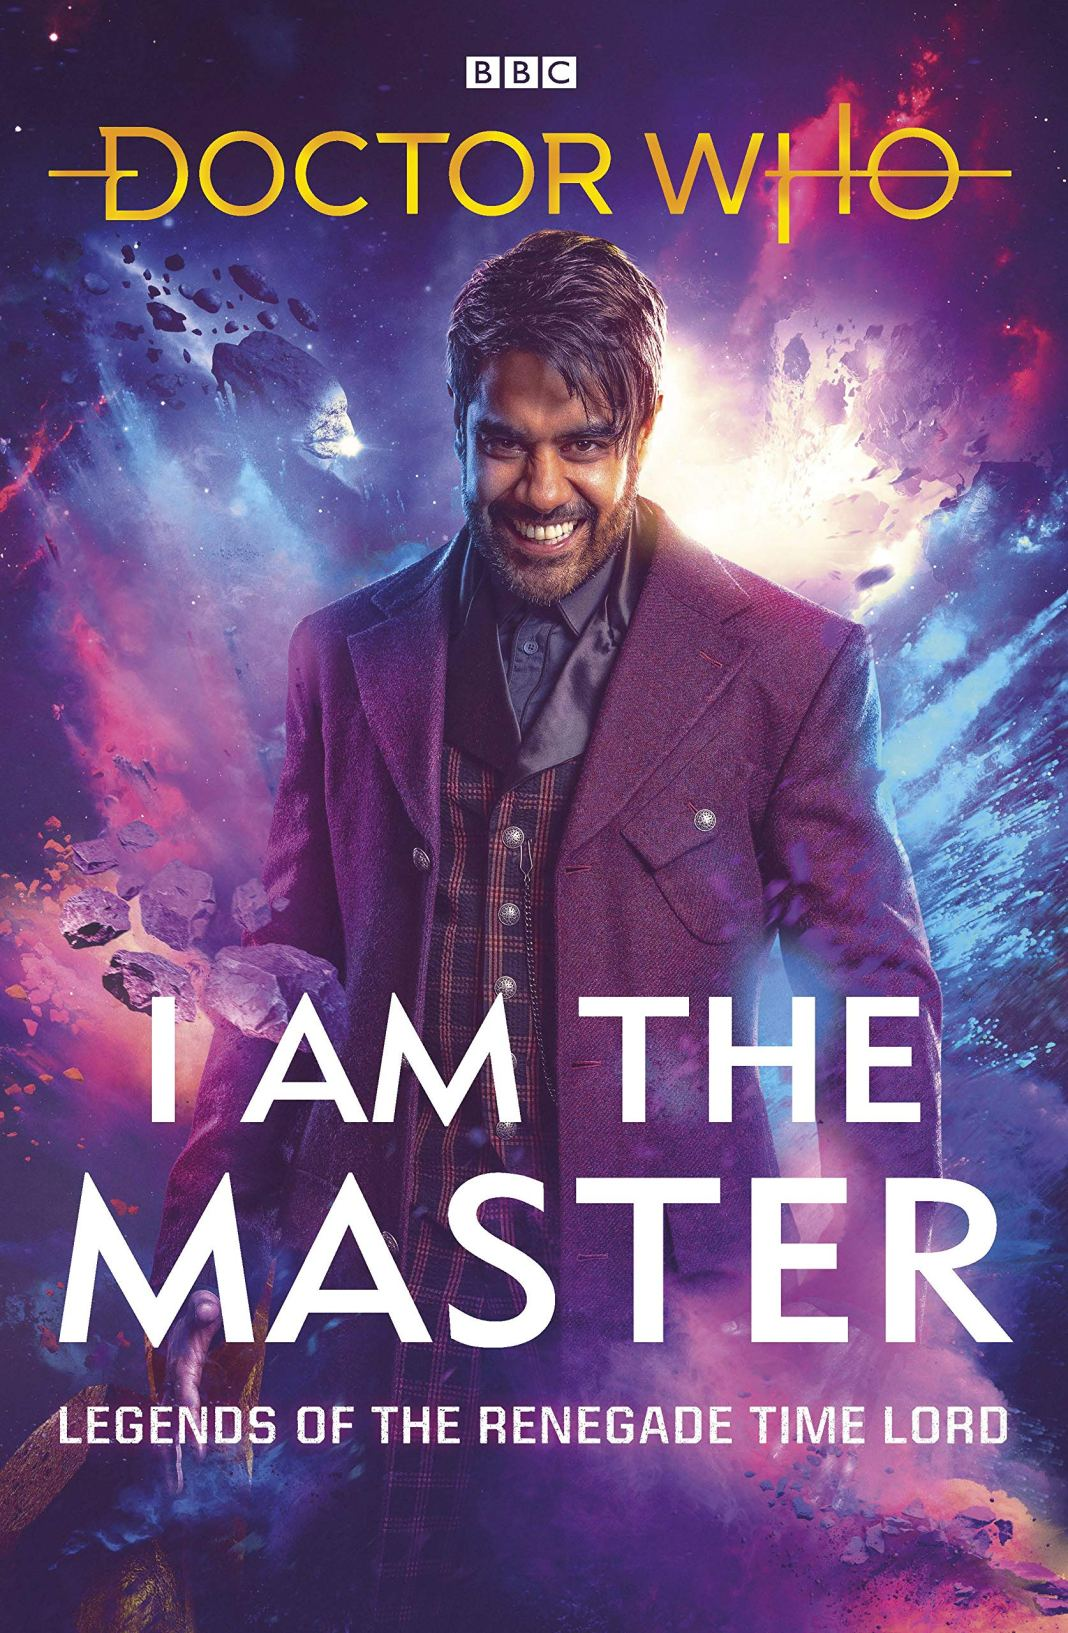 Doctor Who: I Am The Master - Legends of the Renegade Time Lord short story collection (c) BBC Books